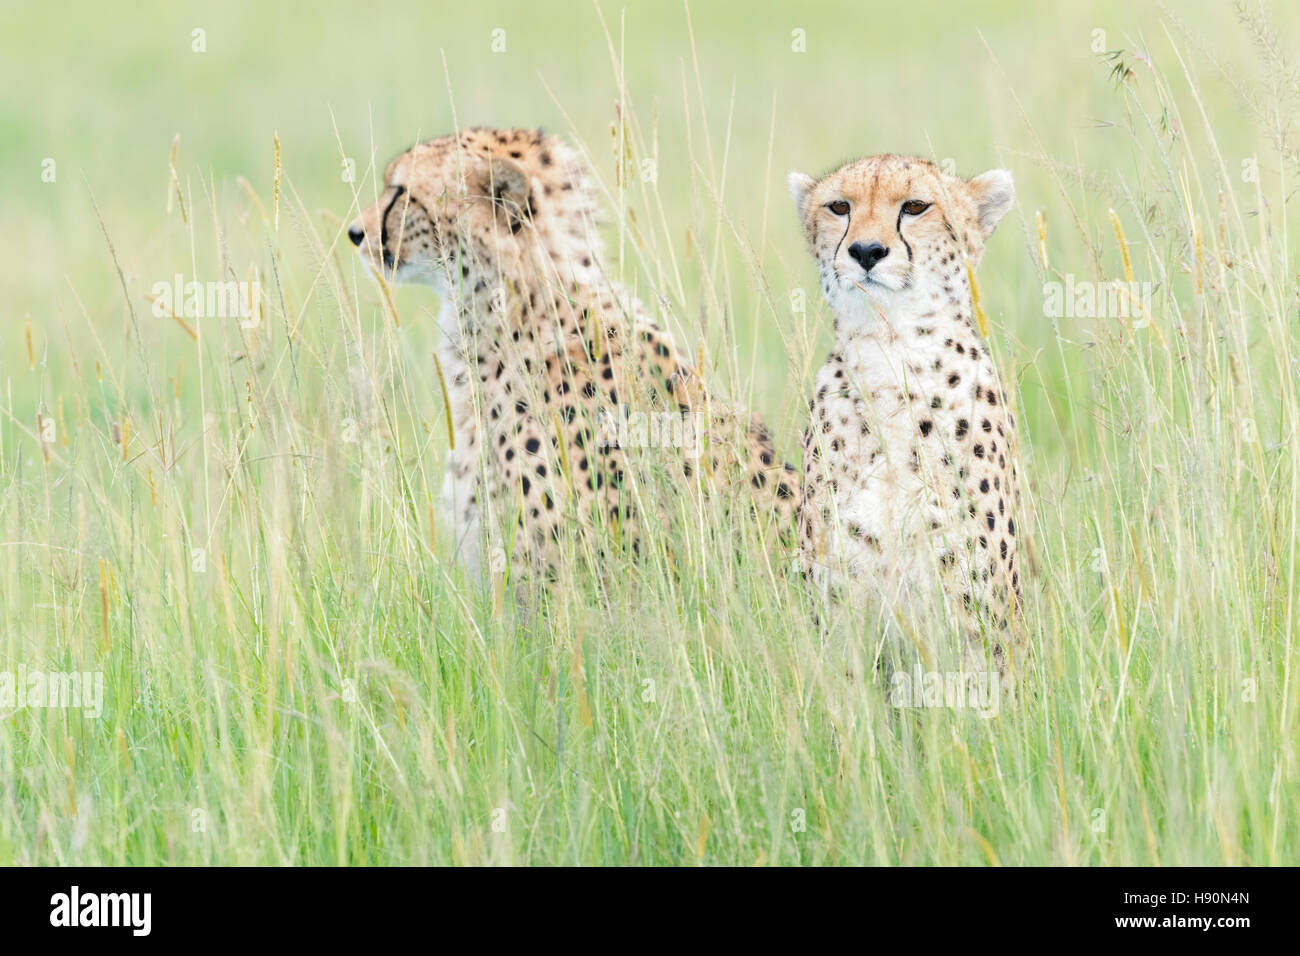 Two Cheetah (Acinonix jubatus) sitting on savanna, Maasai Mara National Reserve, Kenya - Stock Image